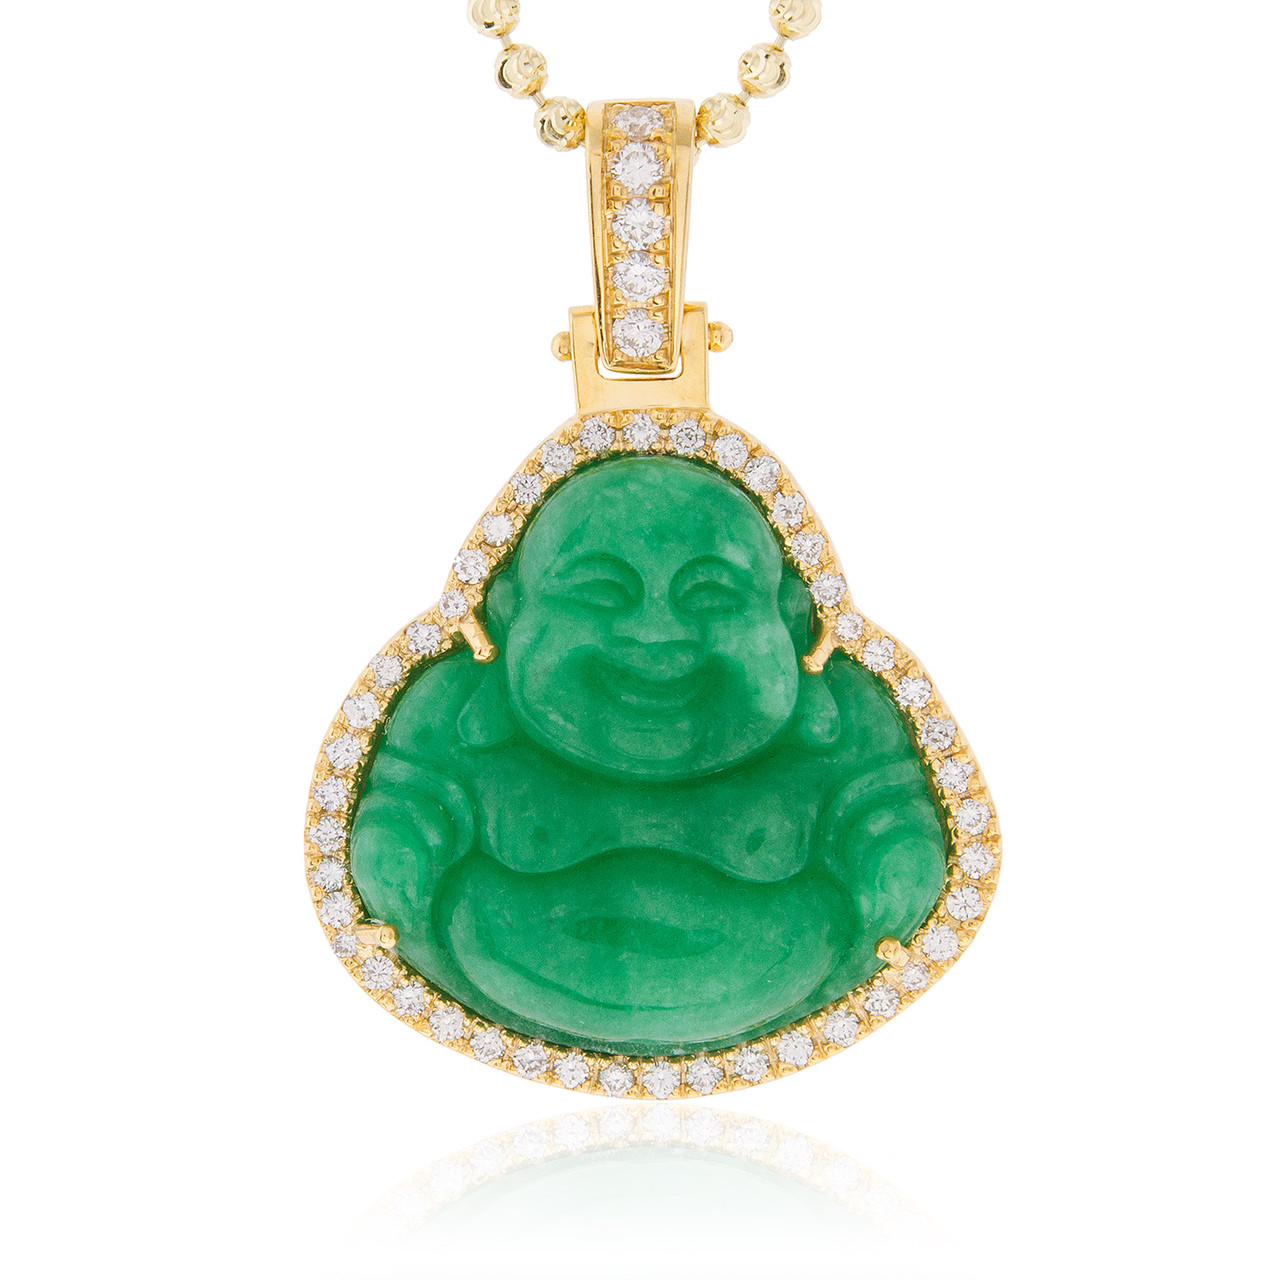 10k Gold Cuban Link Chain >> 14k Yellow Gold 1.5ct Diamond Jade Buddha Pendant - Shyne Jewelers